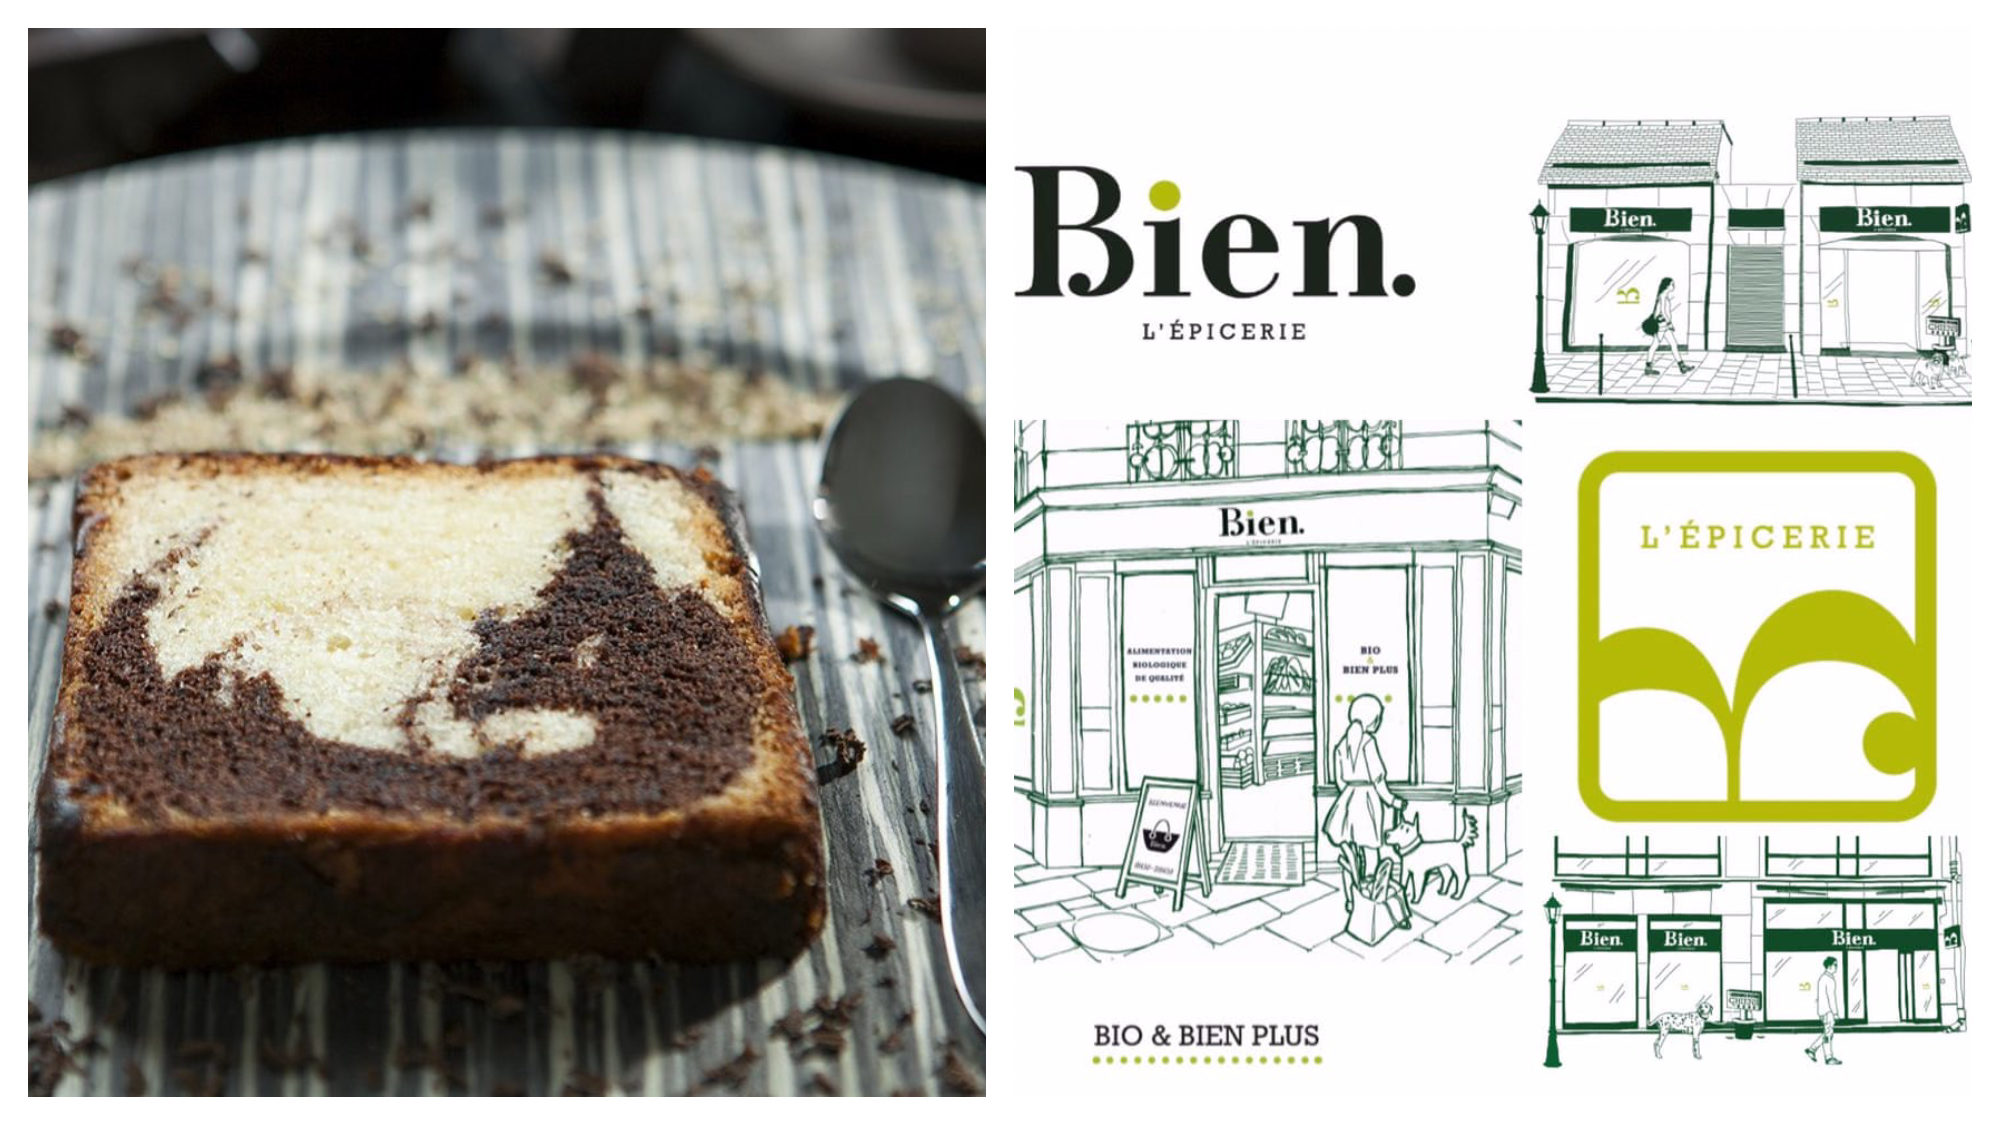 A slice of gluten-free marble cake (left). A sketch of the exterior of one of Bien's gluten-free stores (right).